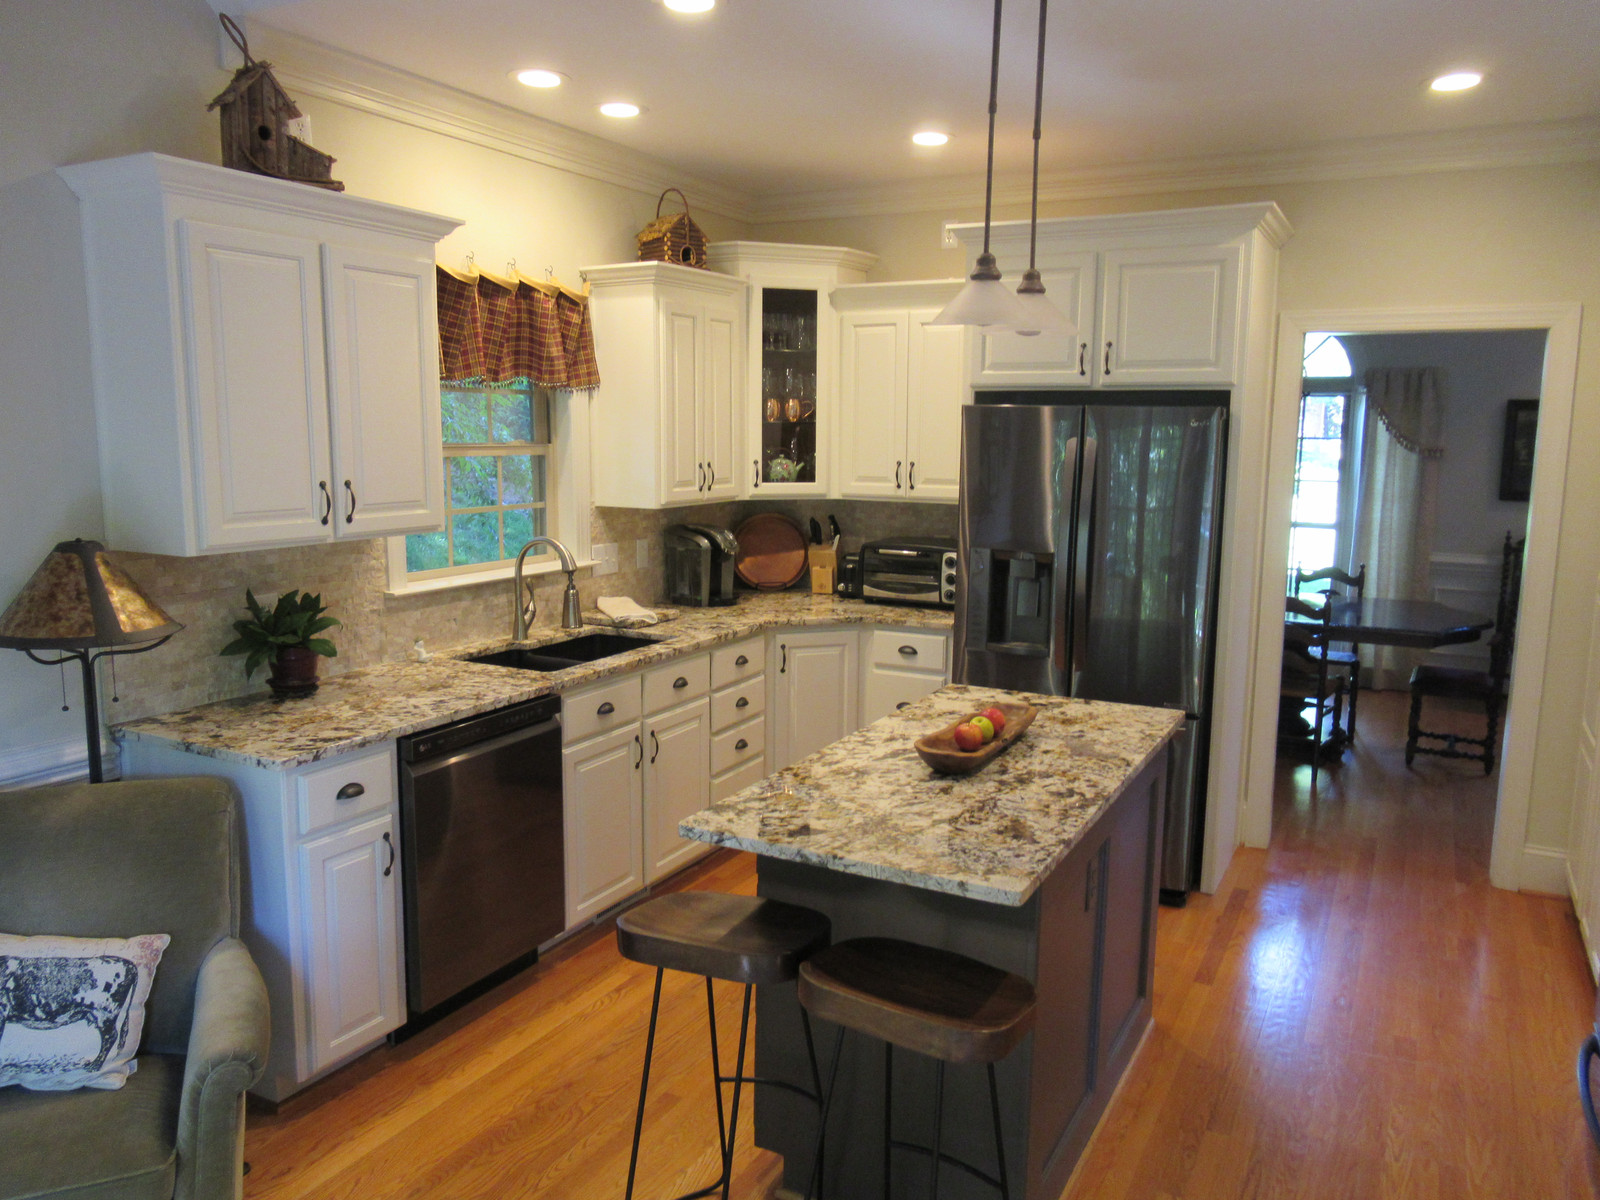 Queen City Kitchens | CABINET REPAINTINGS